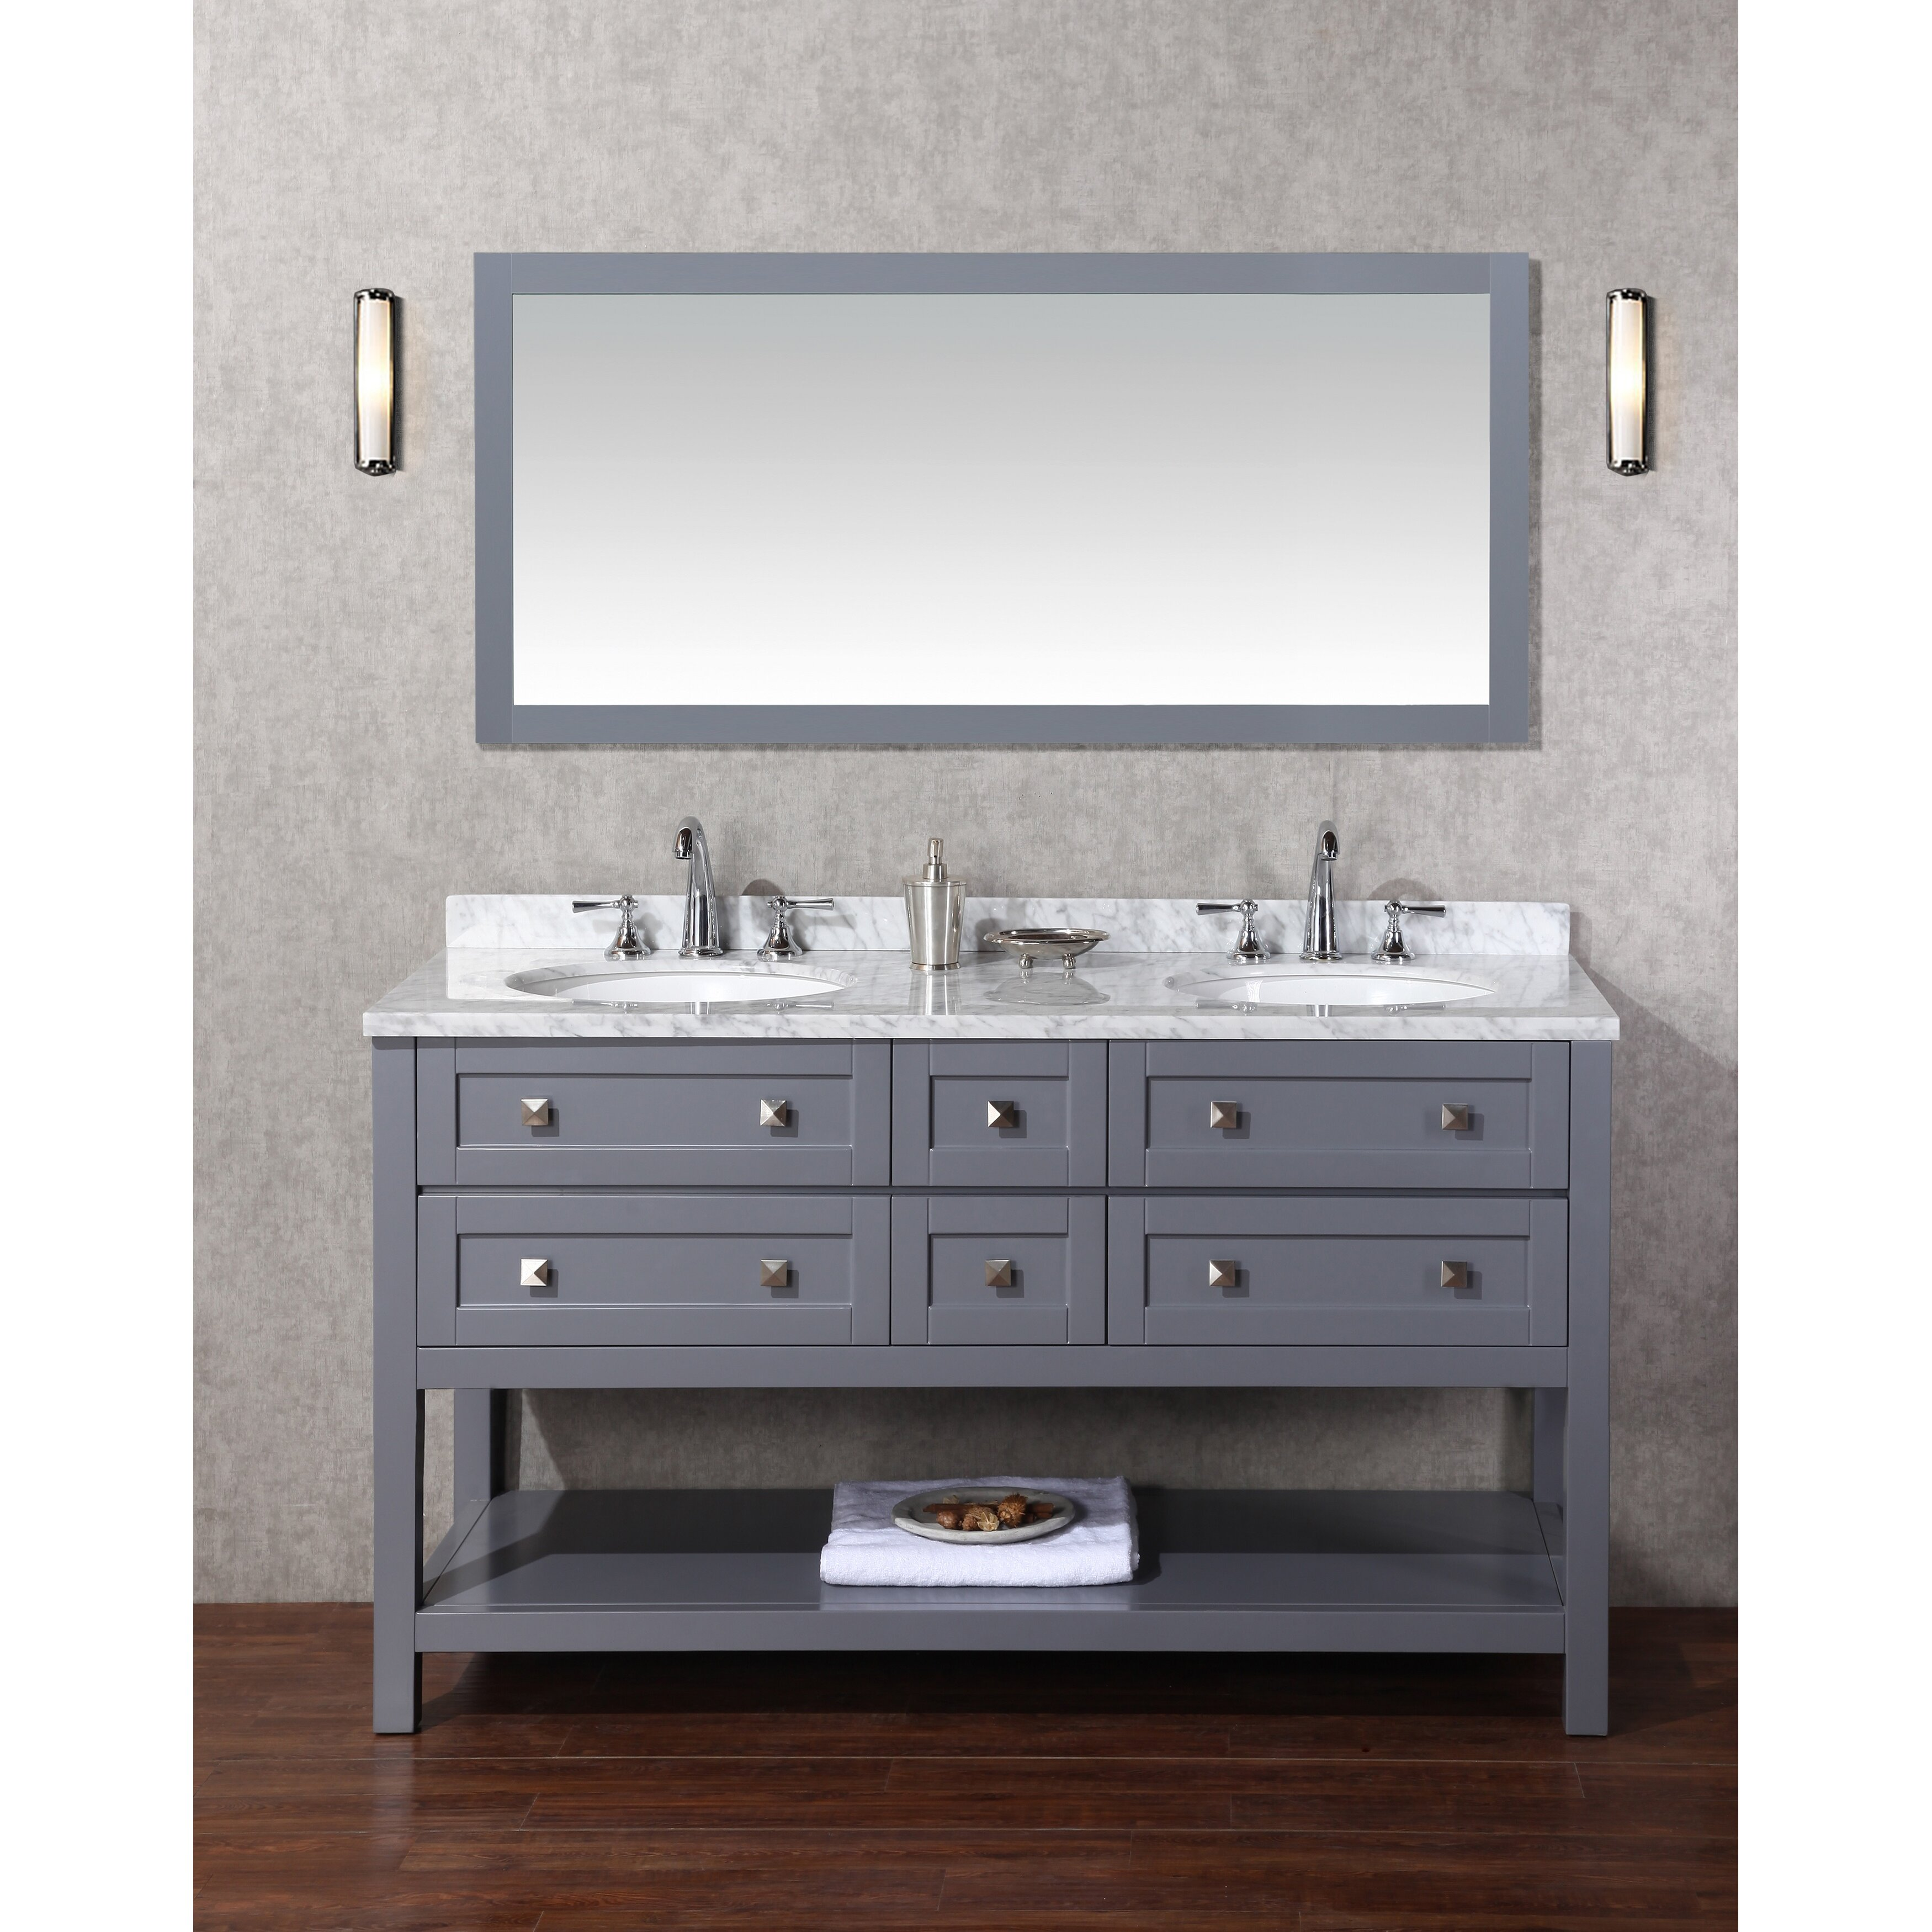 Dcor Design Albia 60 Double Modern Bathroom Vanity Set With Mirror Reviews Wayfair